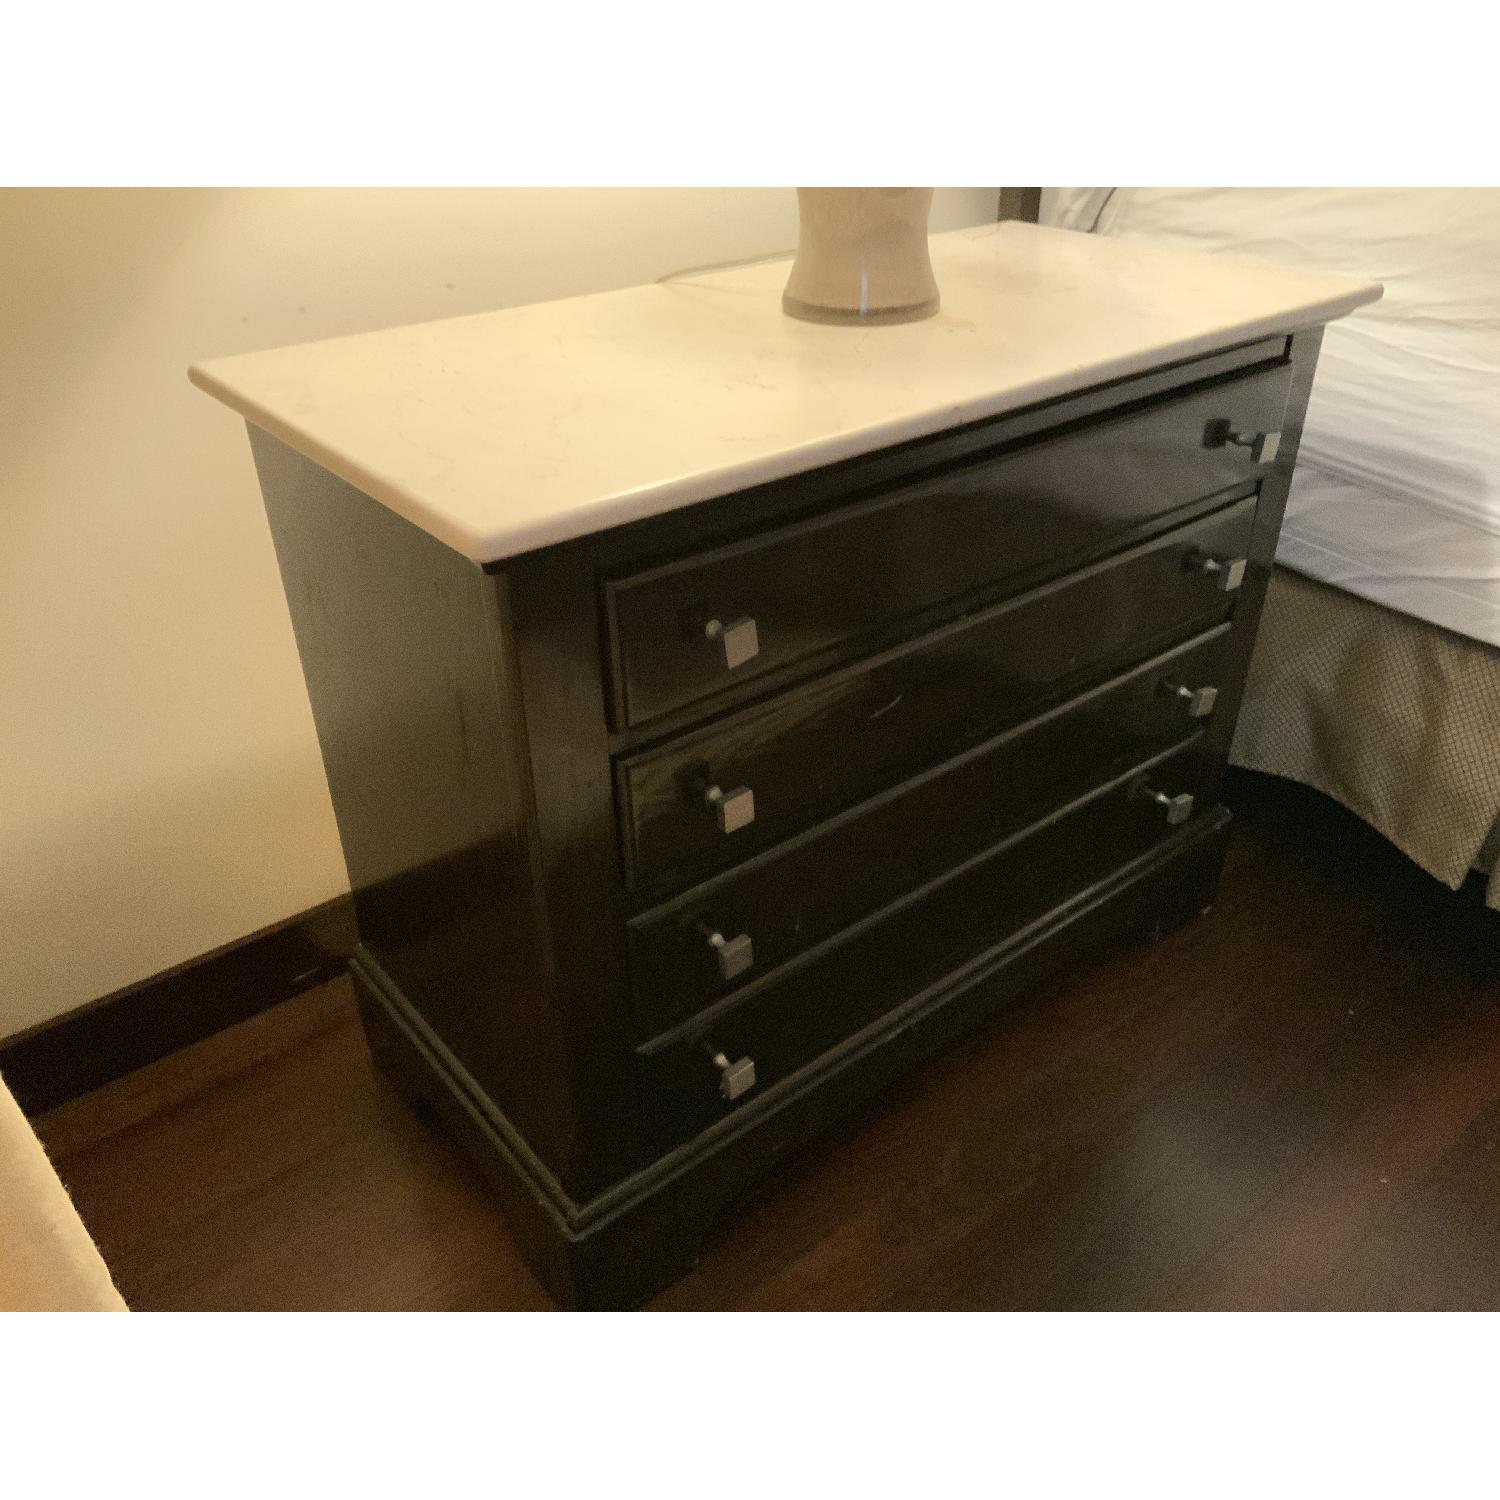 Bernhardt End Tables w/ Marble Tops - image-3